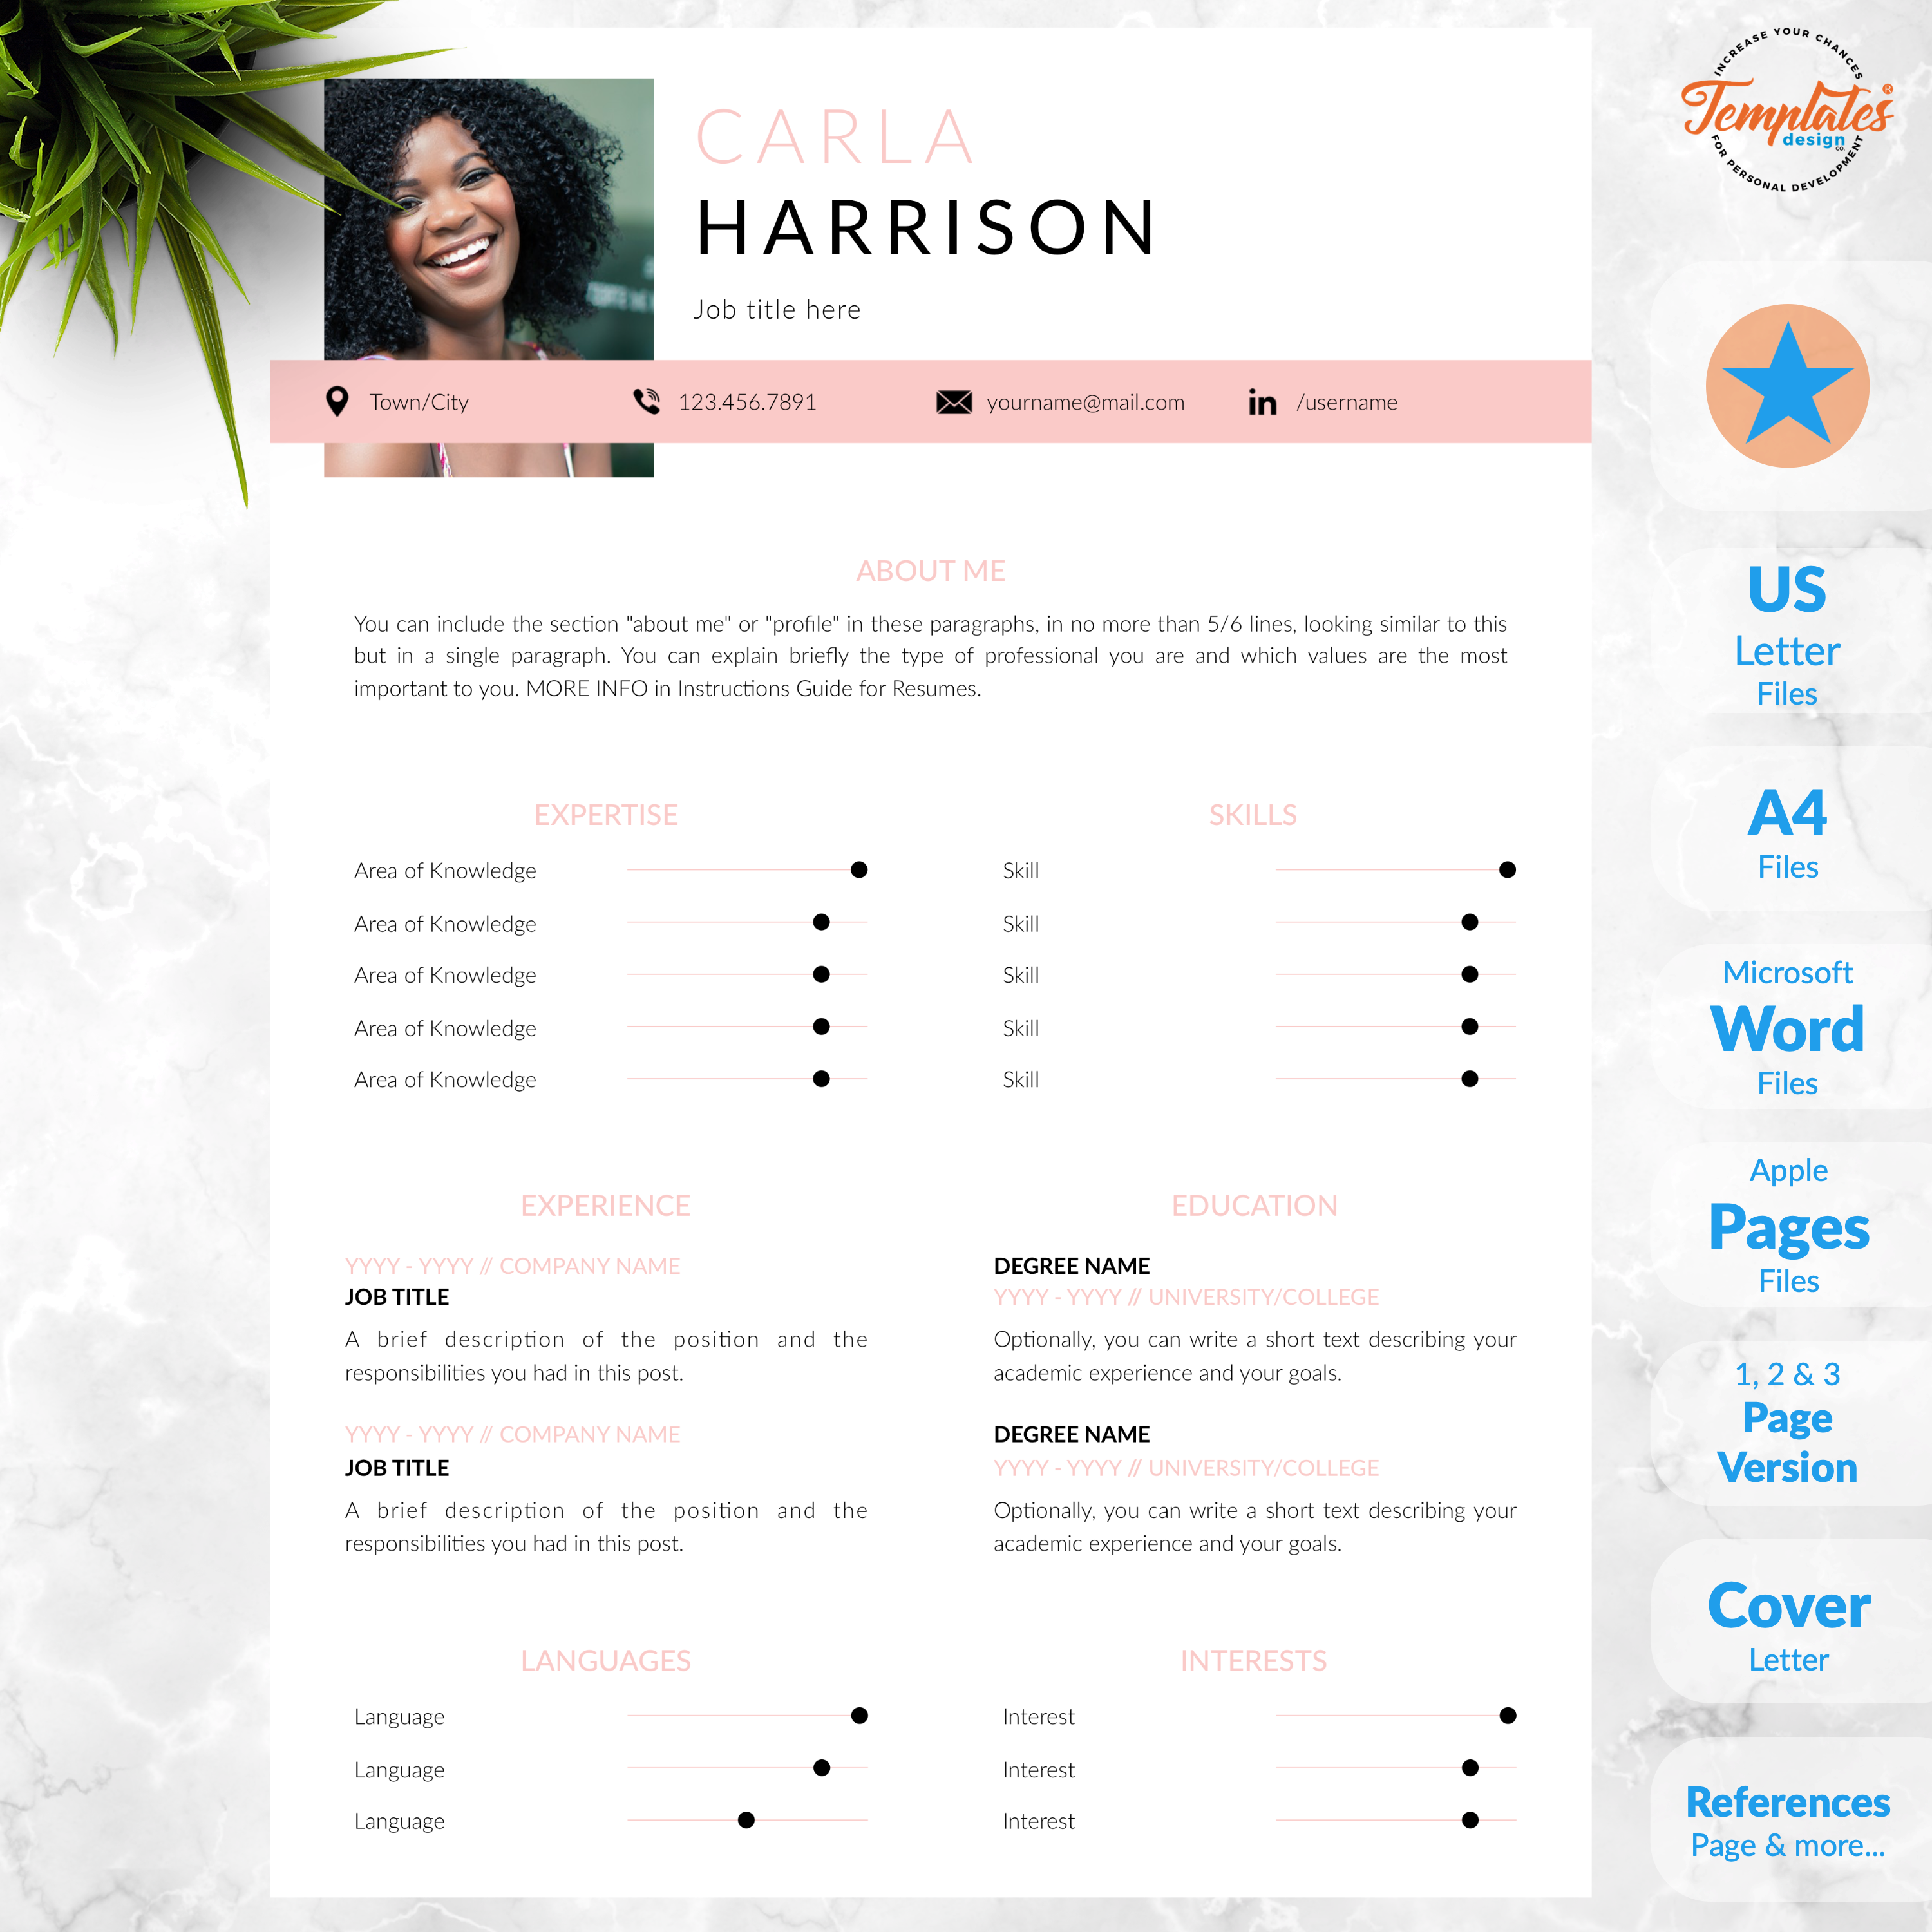 Professional Resume with Photo / Modern CV Template for